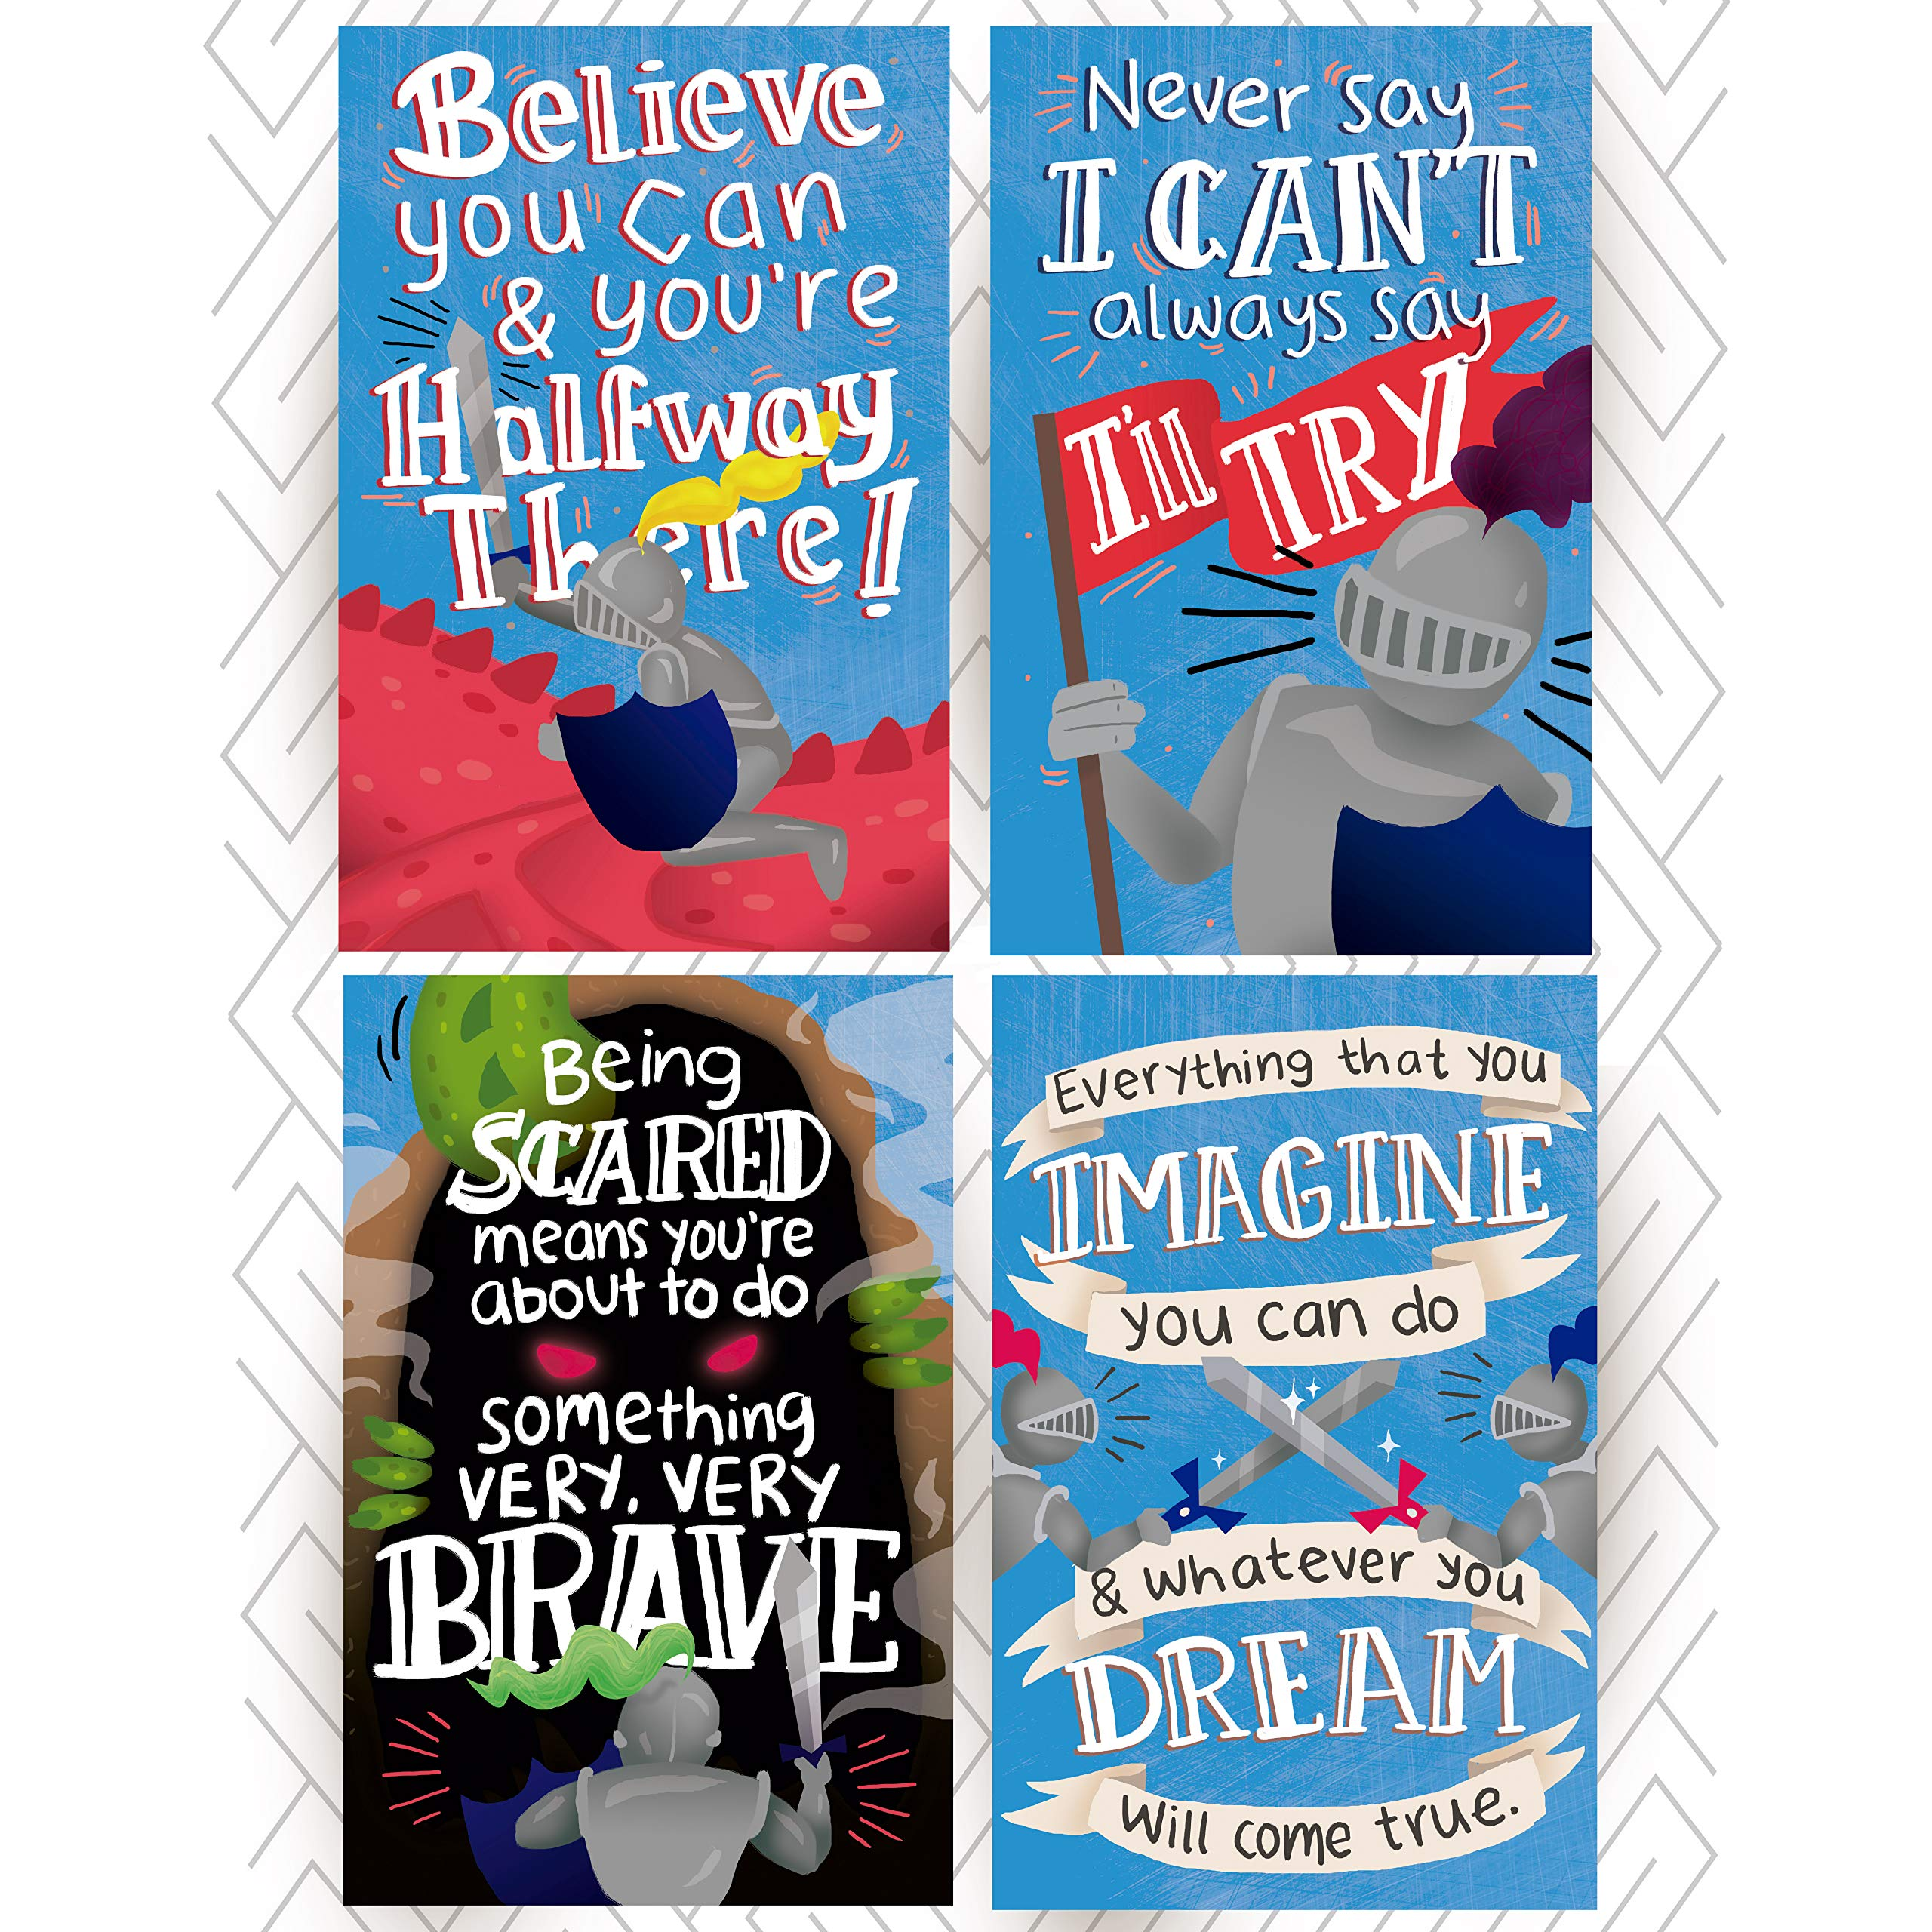 Kid's Room Posters with Inspirational & Motivational Phrases. Medieval Knights Theme with Dragons and Courageous Knights to Incentivize Your Kids to Achieve Whatever Goal They Set to Themselves by Throwback Traits